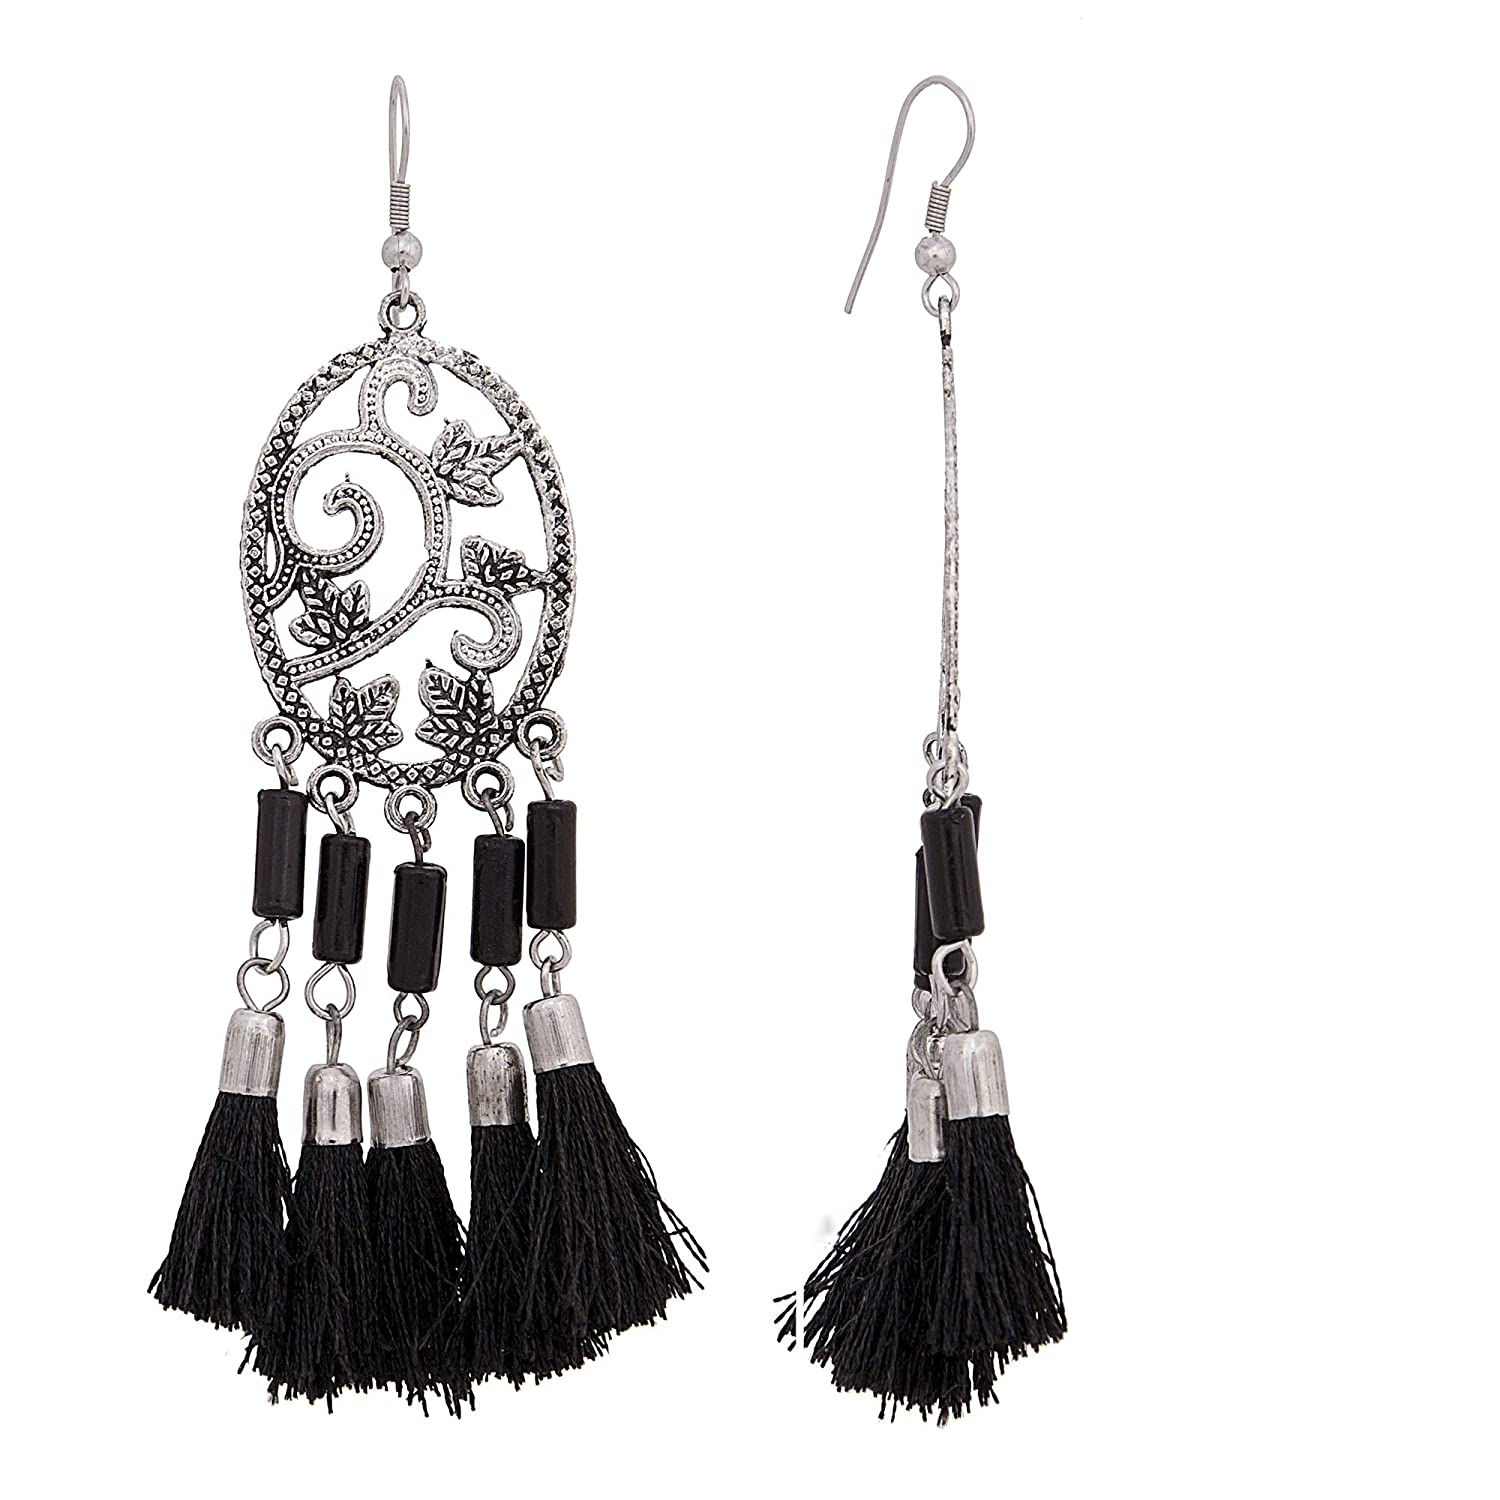 dc4d65e50 Buy Bellazie Black Oxidized Silver Tassel Drop Kashmiri Design Silver  Nickel and Lead-free Earrings Combo for Women Online at Low Prices in India  | Amazon ...